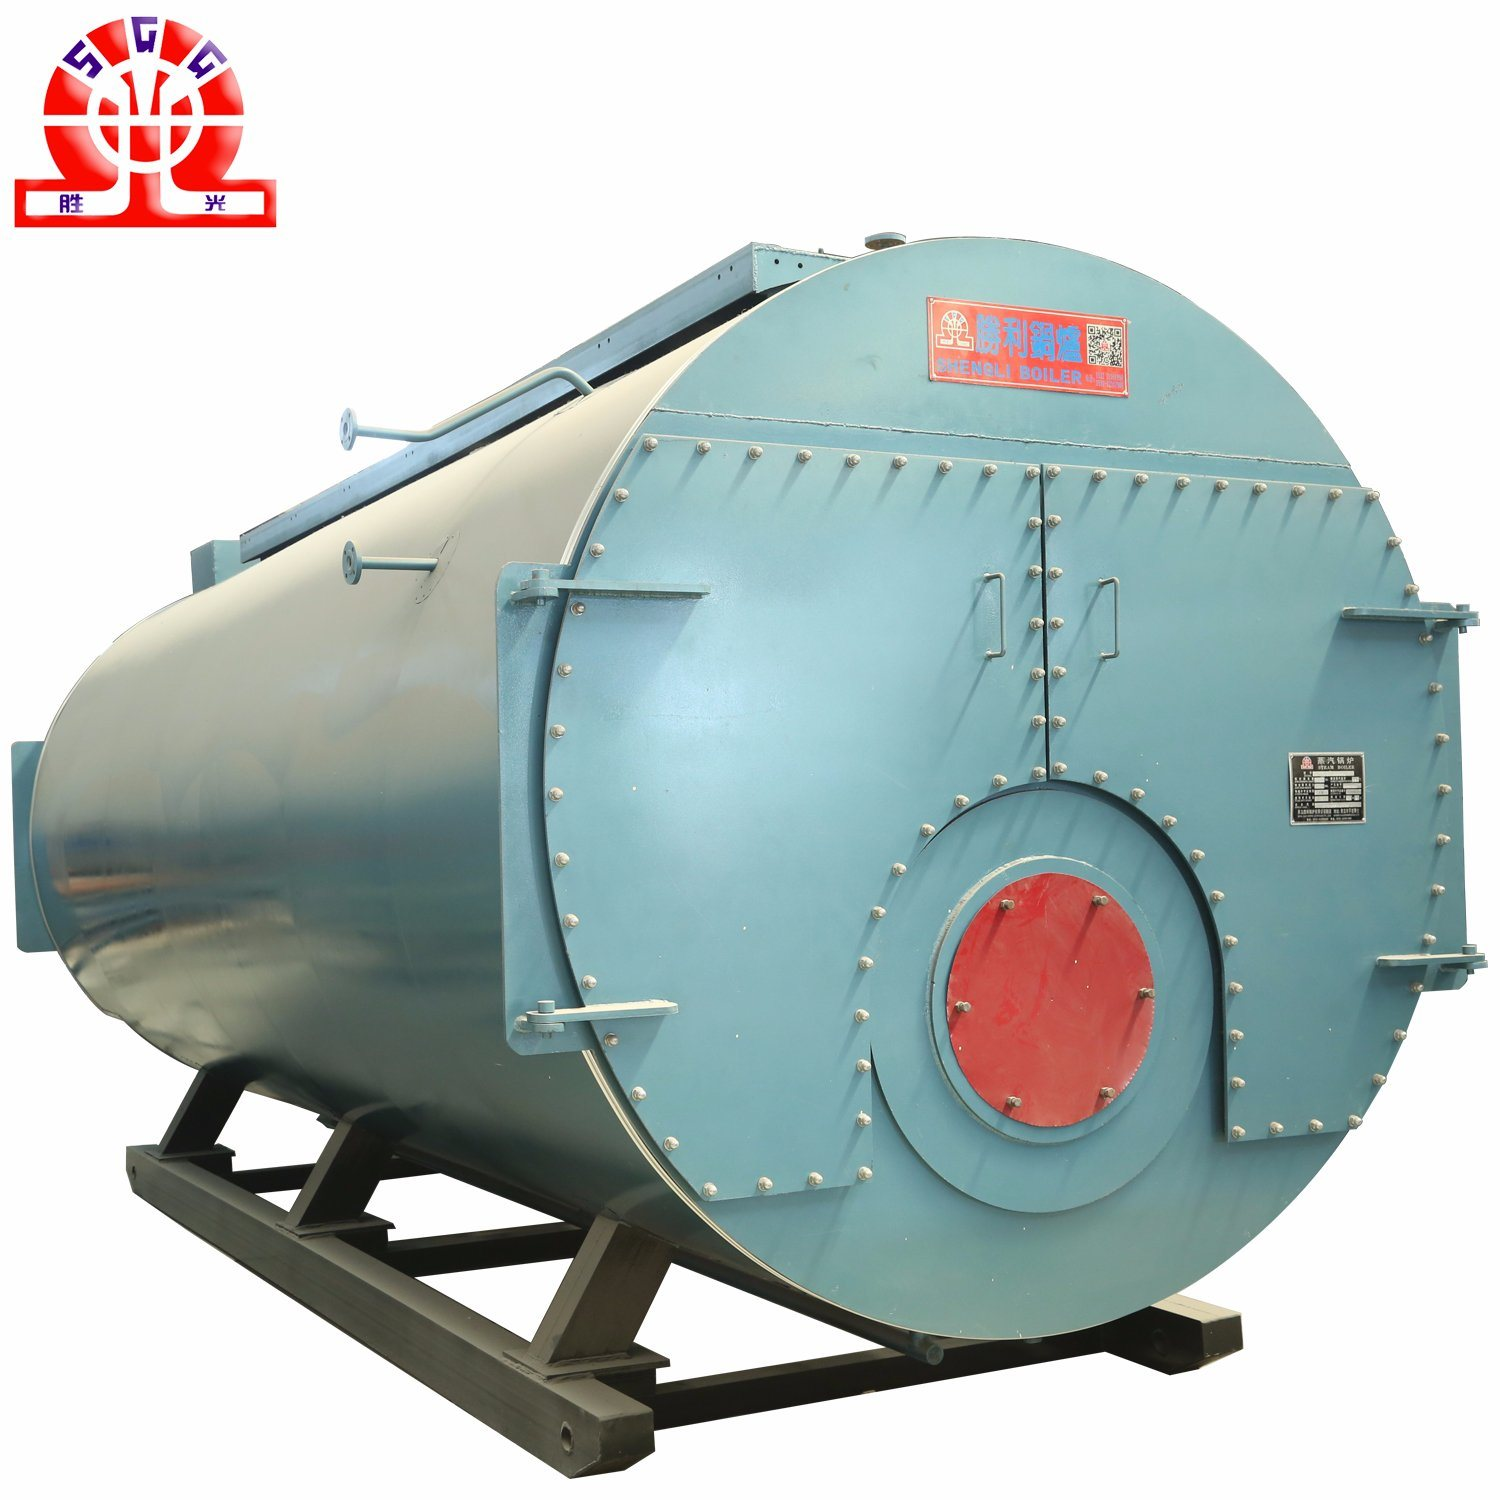 China Salable LPG Fired Steam Heating Boiler - China Fuel Saving ...